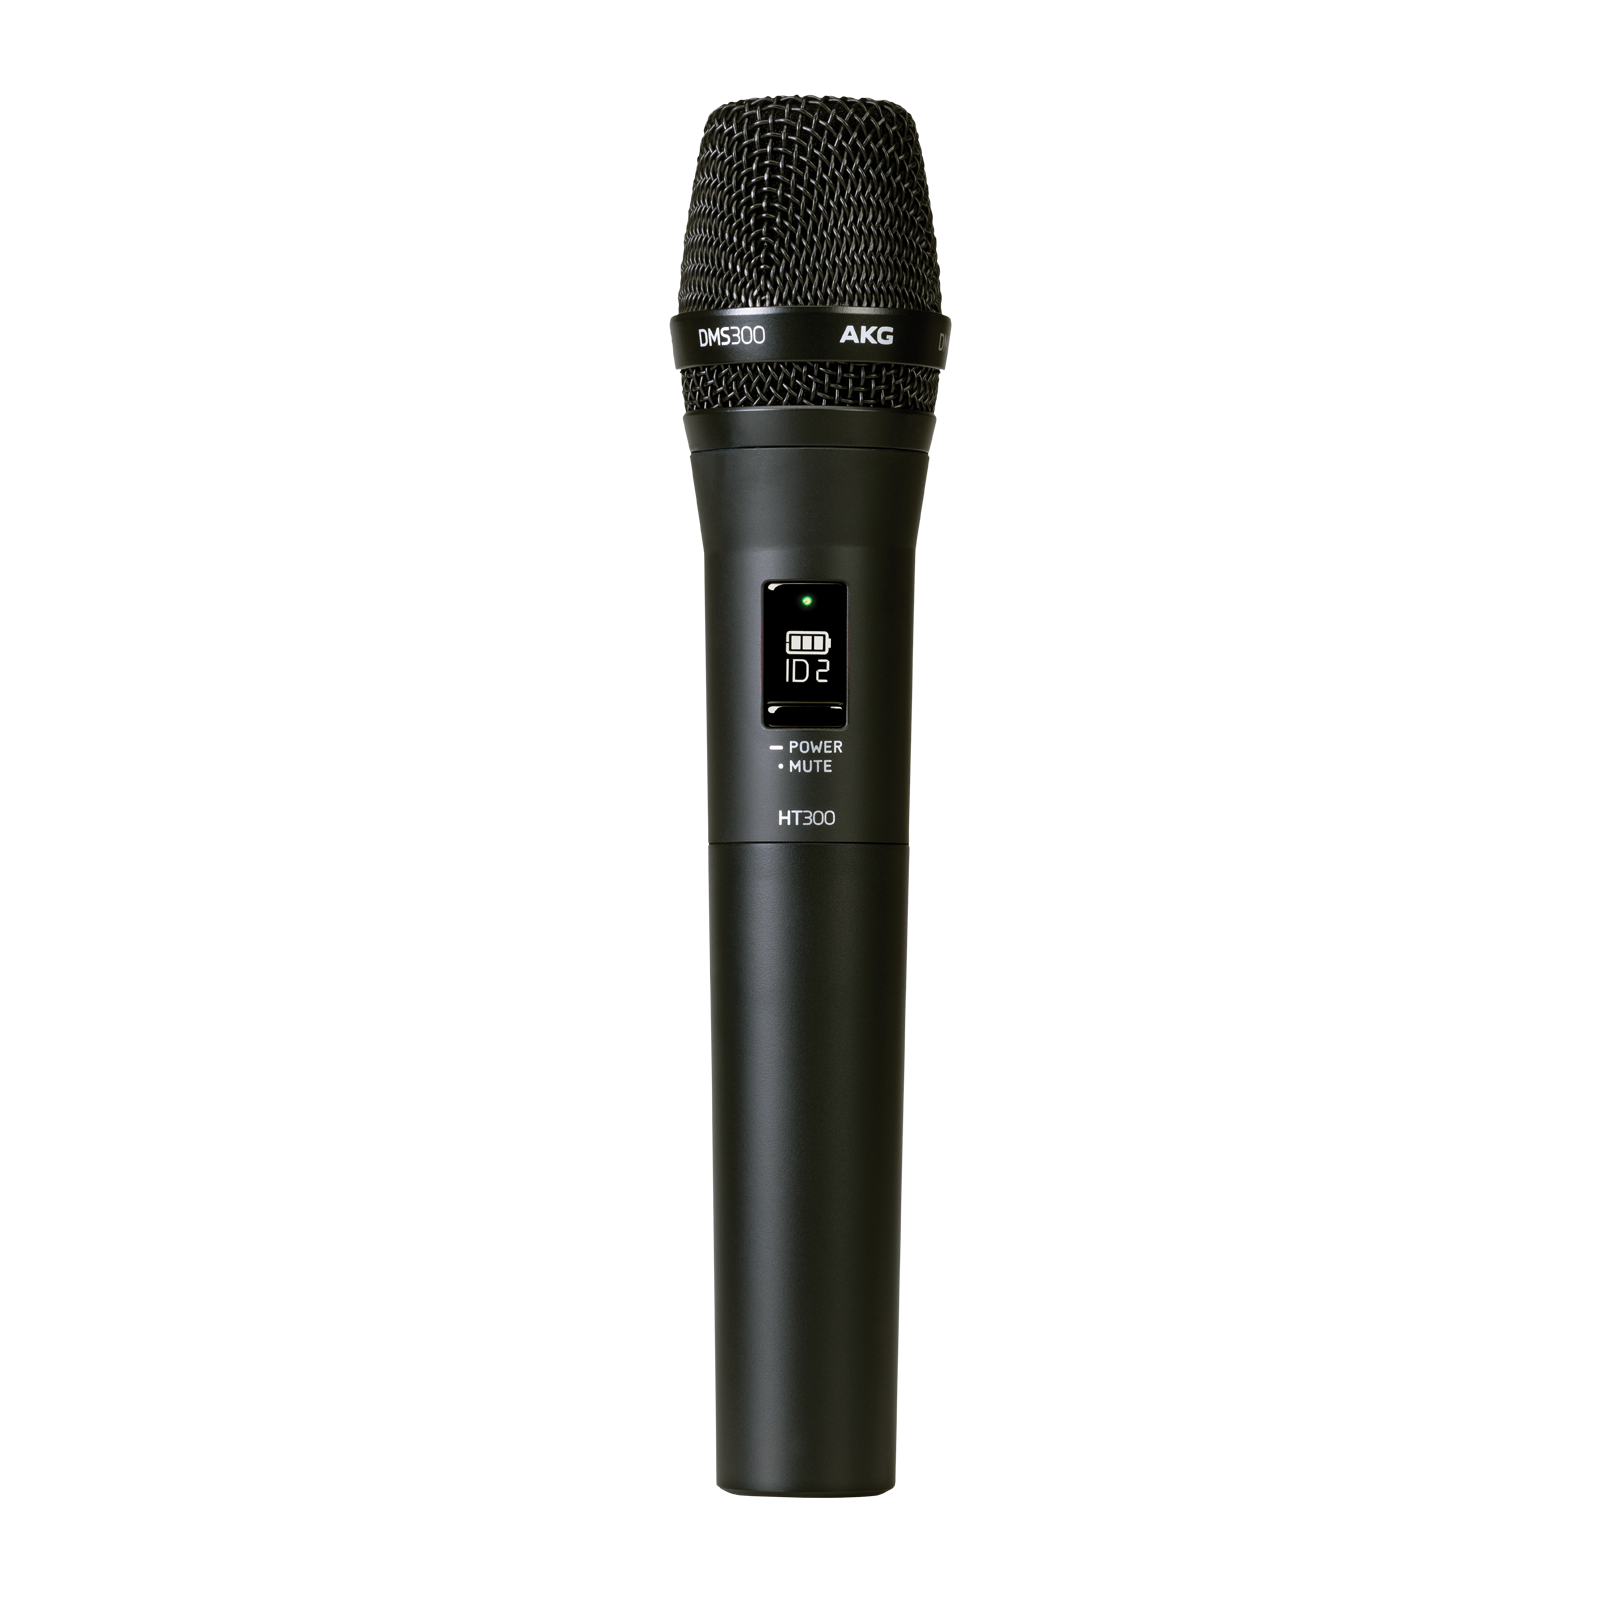 DMS300 Microphone Set - Black - Digital wireless microphone system - Detailshot 1